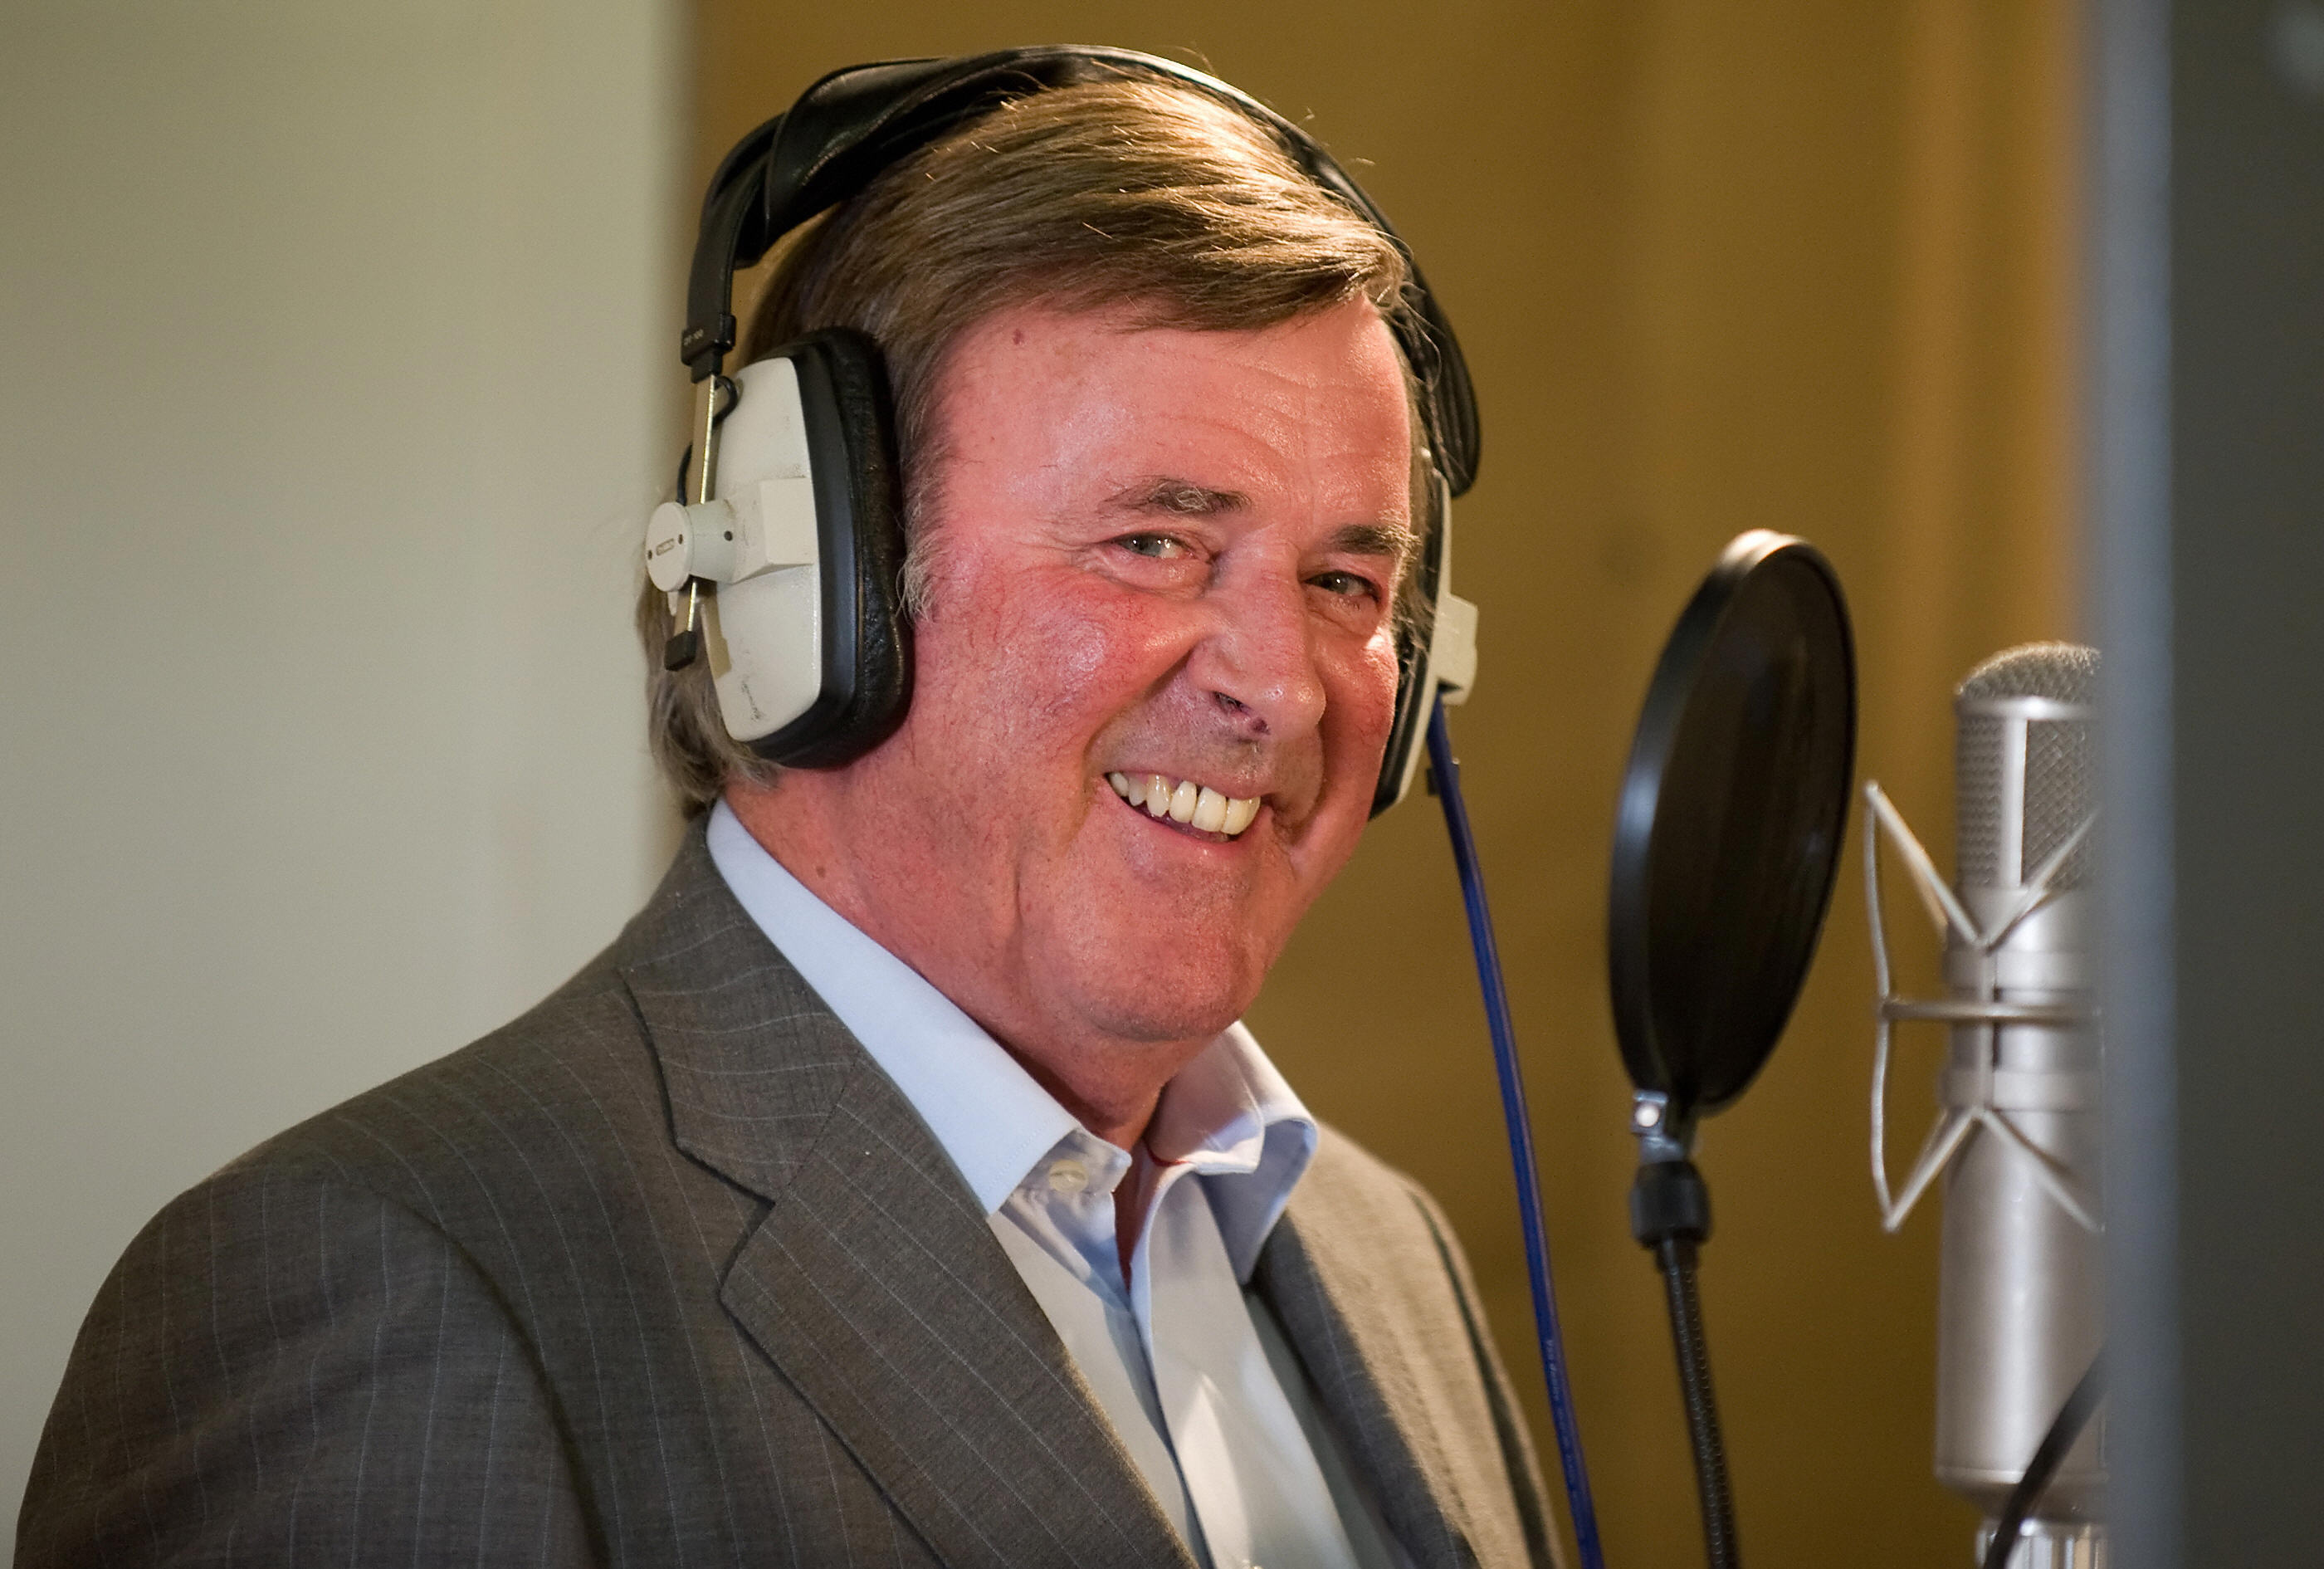 TV and radio presenter Terry Wogan takes part in a charity recording of a Children in Need album, joining forces with Pink Floyd drummer Nick Mason, ex-Rolling Stone Bill Wyman, singer Midge Ure and many others at Abbey Road studios, in west London, on September 7, 2009. Radio veteran Terry Wogan announced on Monday that he will be leaving Radio 2's breakfast show, the nation's most popular, and that he will be replaced by Chris Evans. Speaking live on air, the 71-year-old said the decision to leave Wake Up To Wogan at the end of the year was the hardest of his career. AFP PHOTO/Leon Neal (Photo credit should read Leon Neal/AFP/Getty Images)